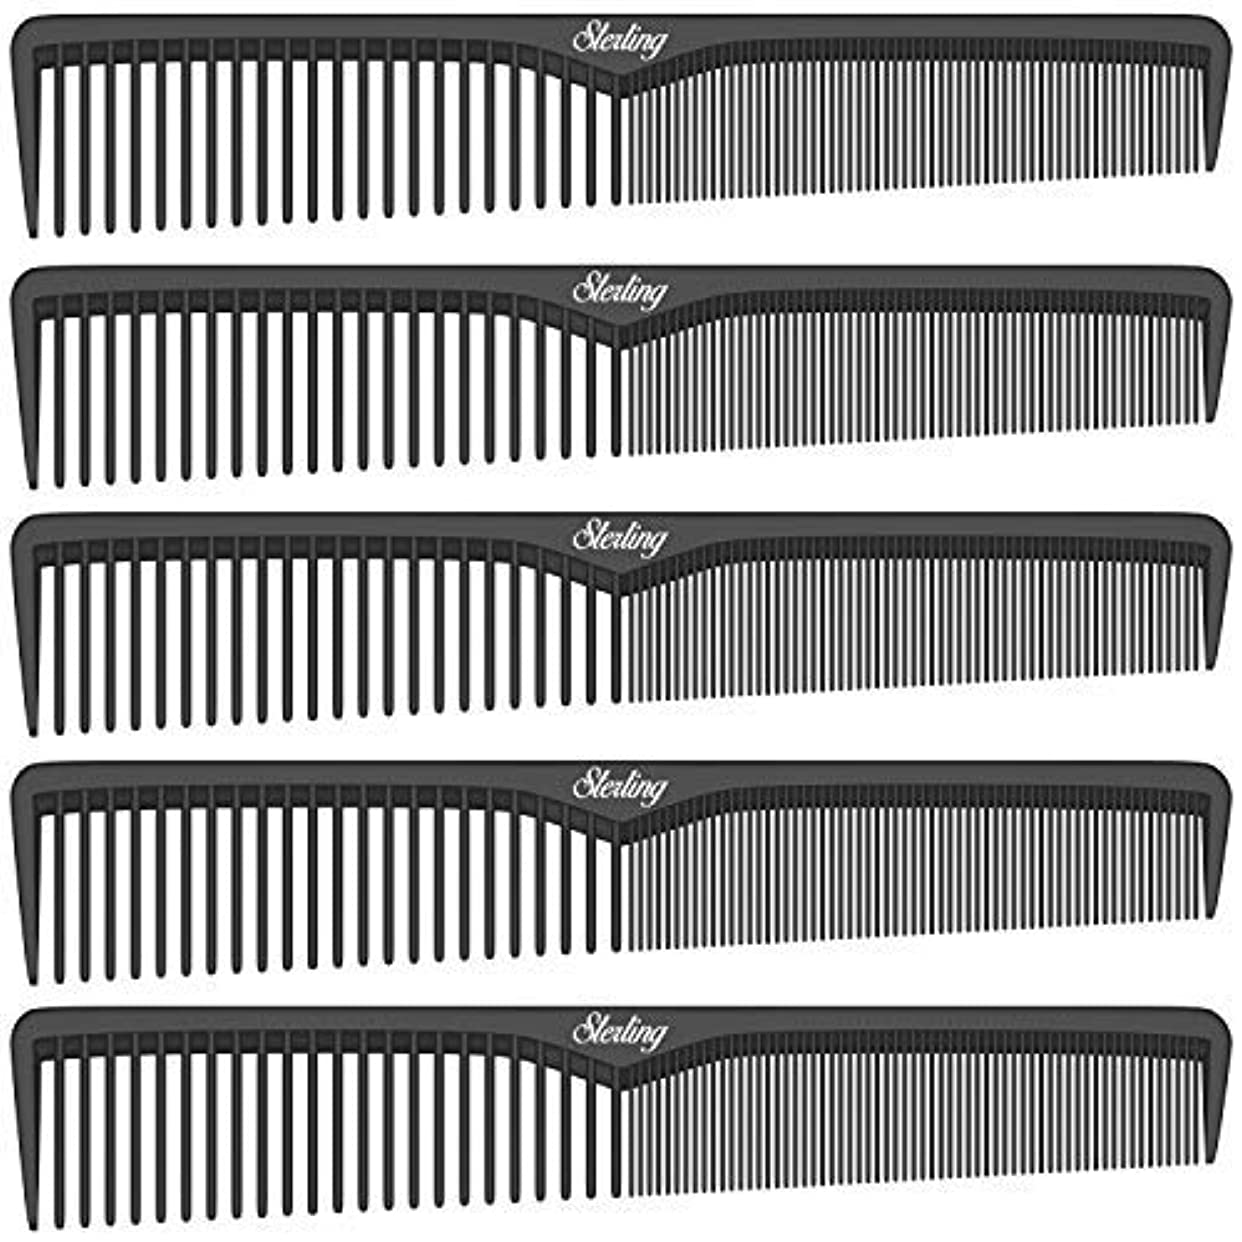 霜線硬いSterling Beauty Tools Styling Combs, Professional 7